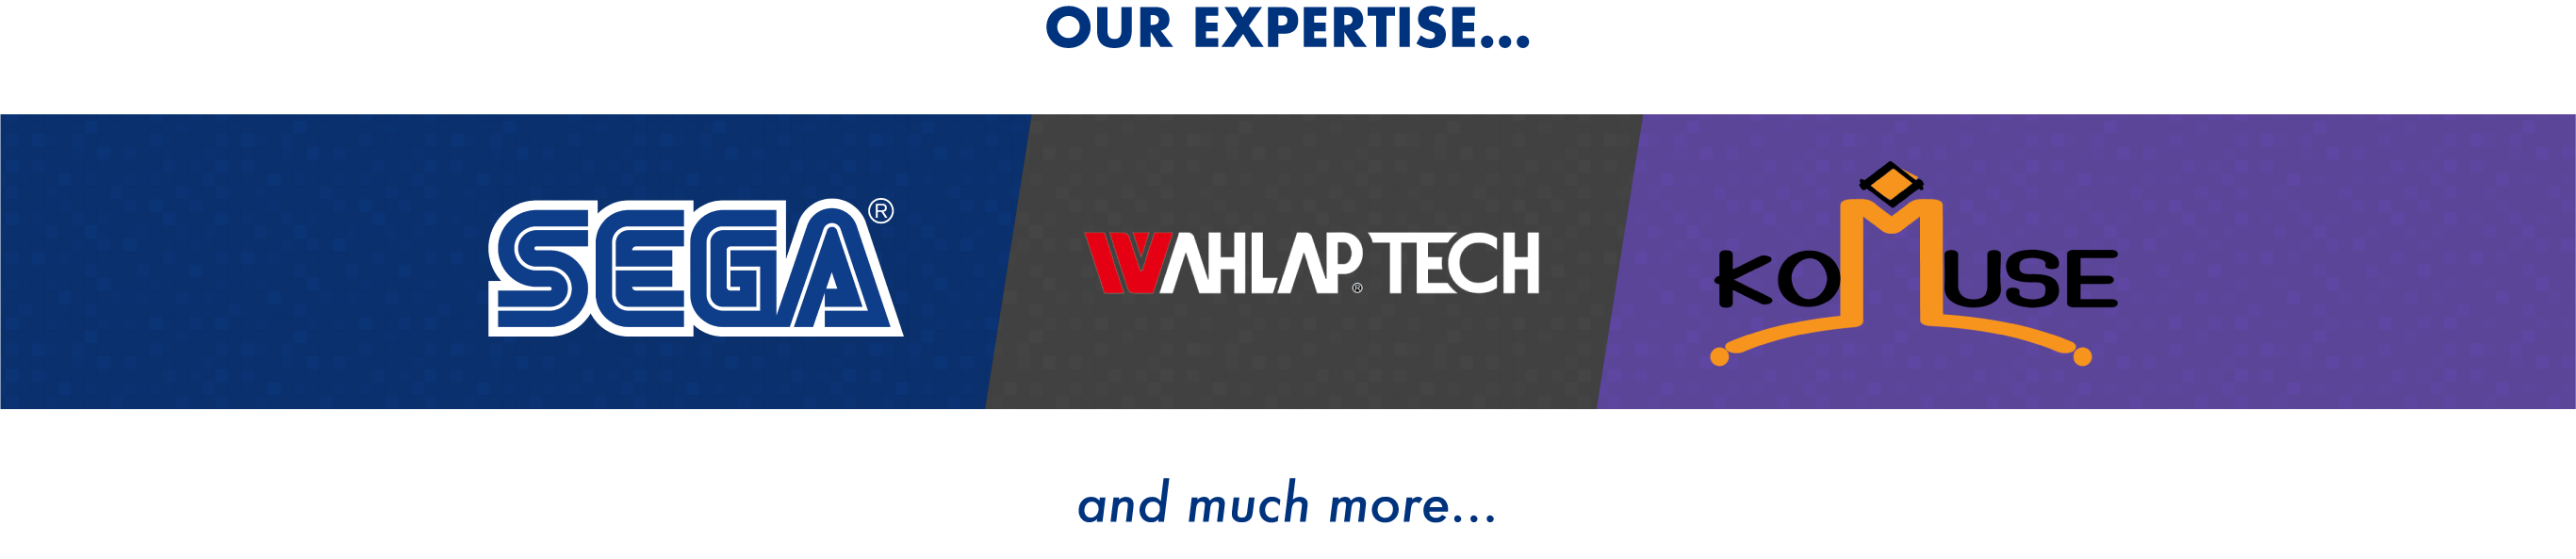 Our technical expertise includes Sega, Wahlap Tech and Komuse